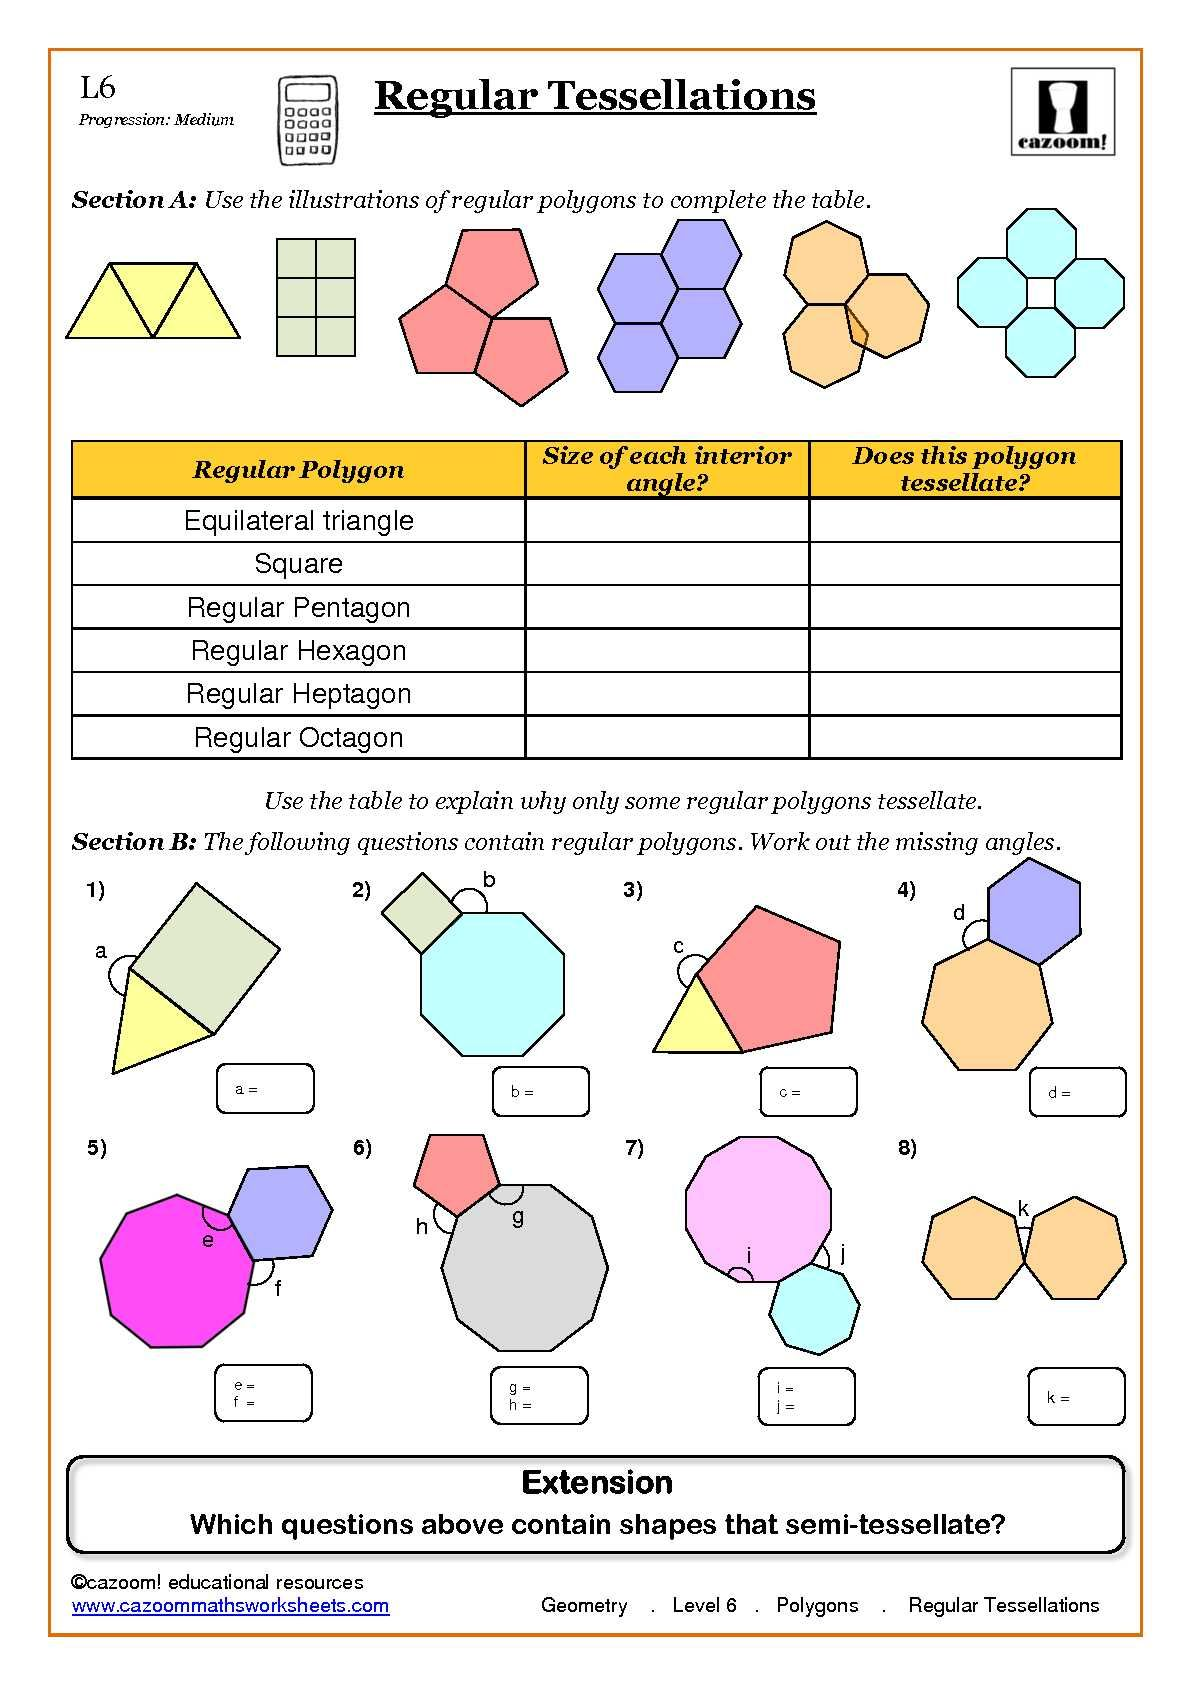 worksheet Fun Geometry Worksheets 10 best images about fun maths worksheets on pinterest wheels number and sense